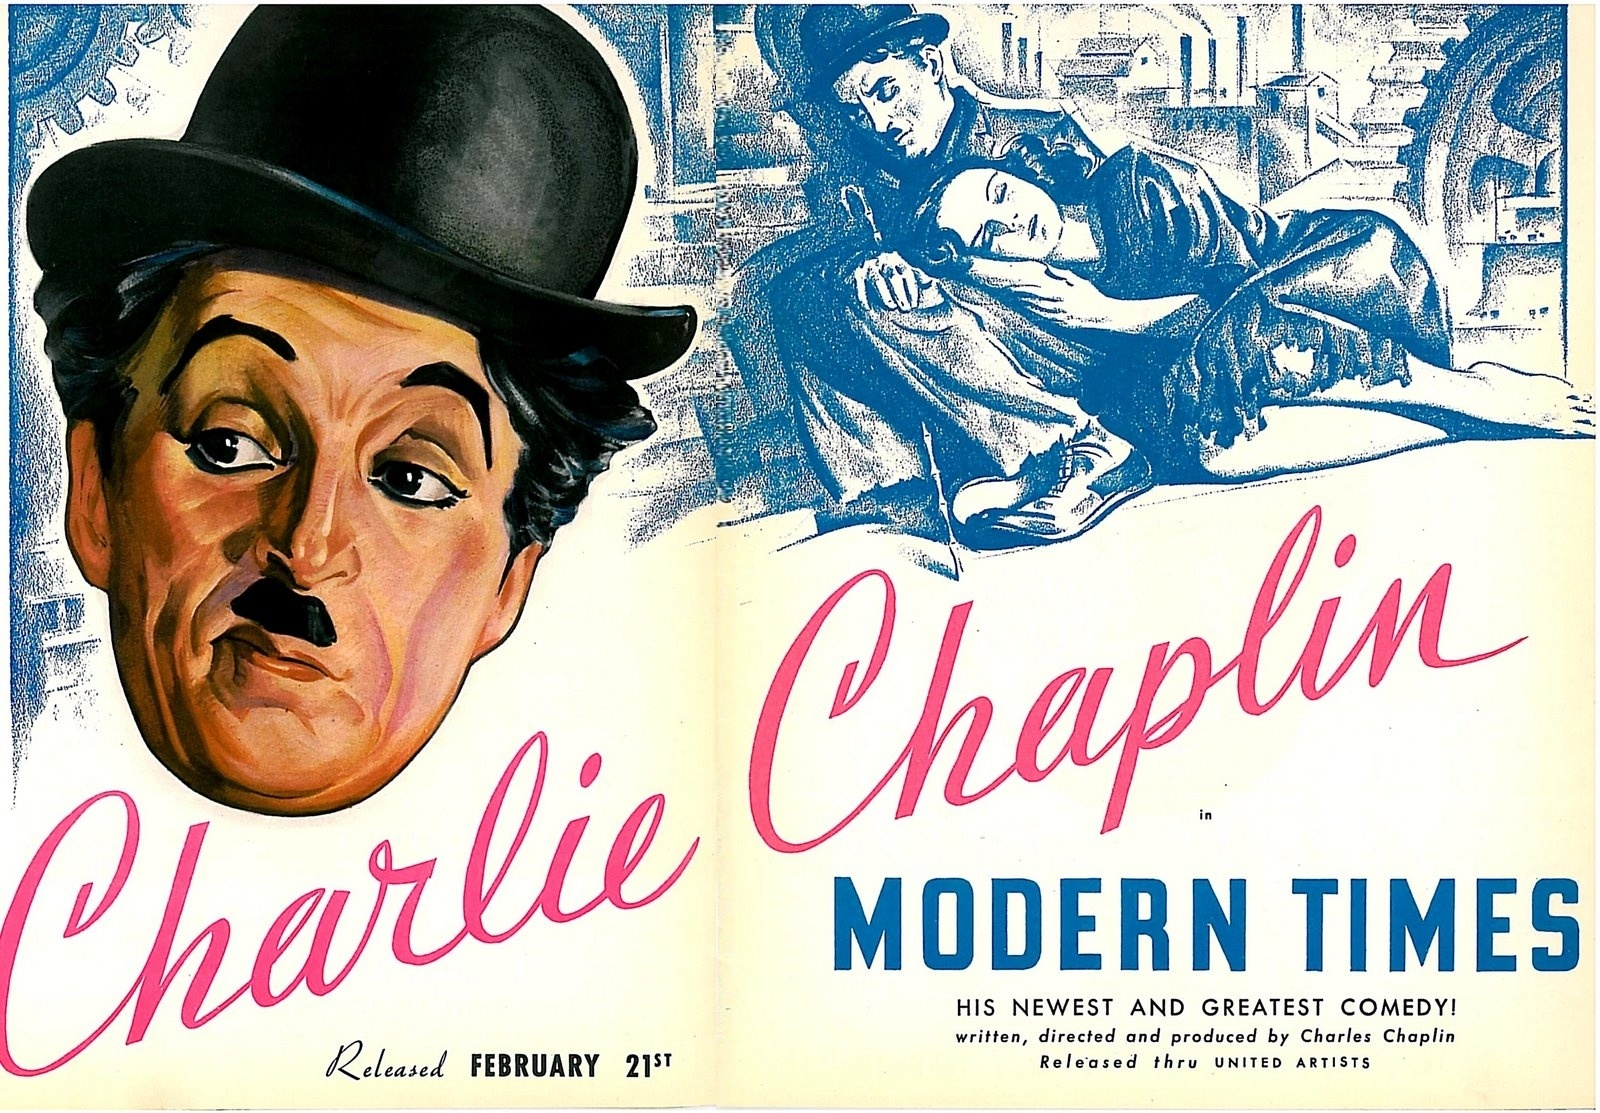 Charlie chaplin modern times watchfaces for smart watches.